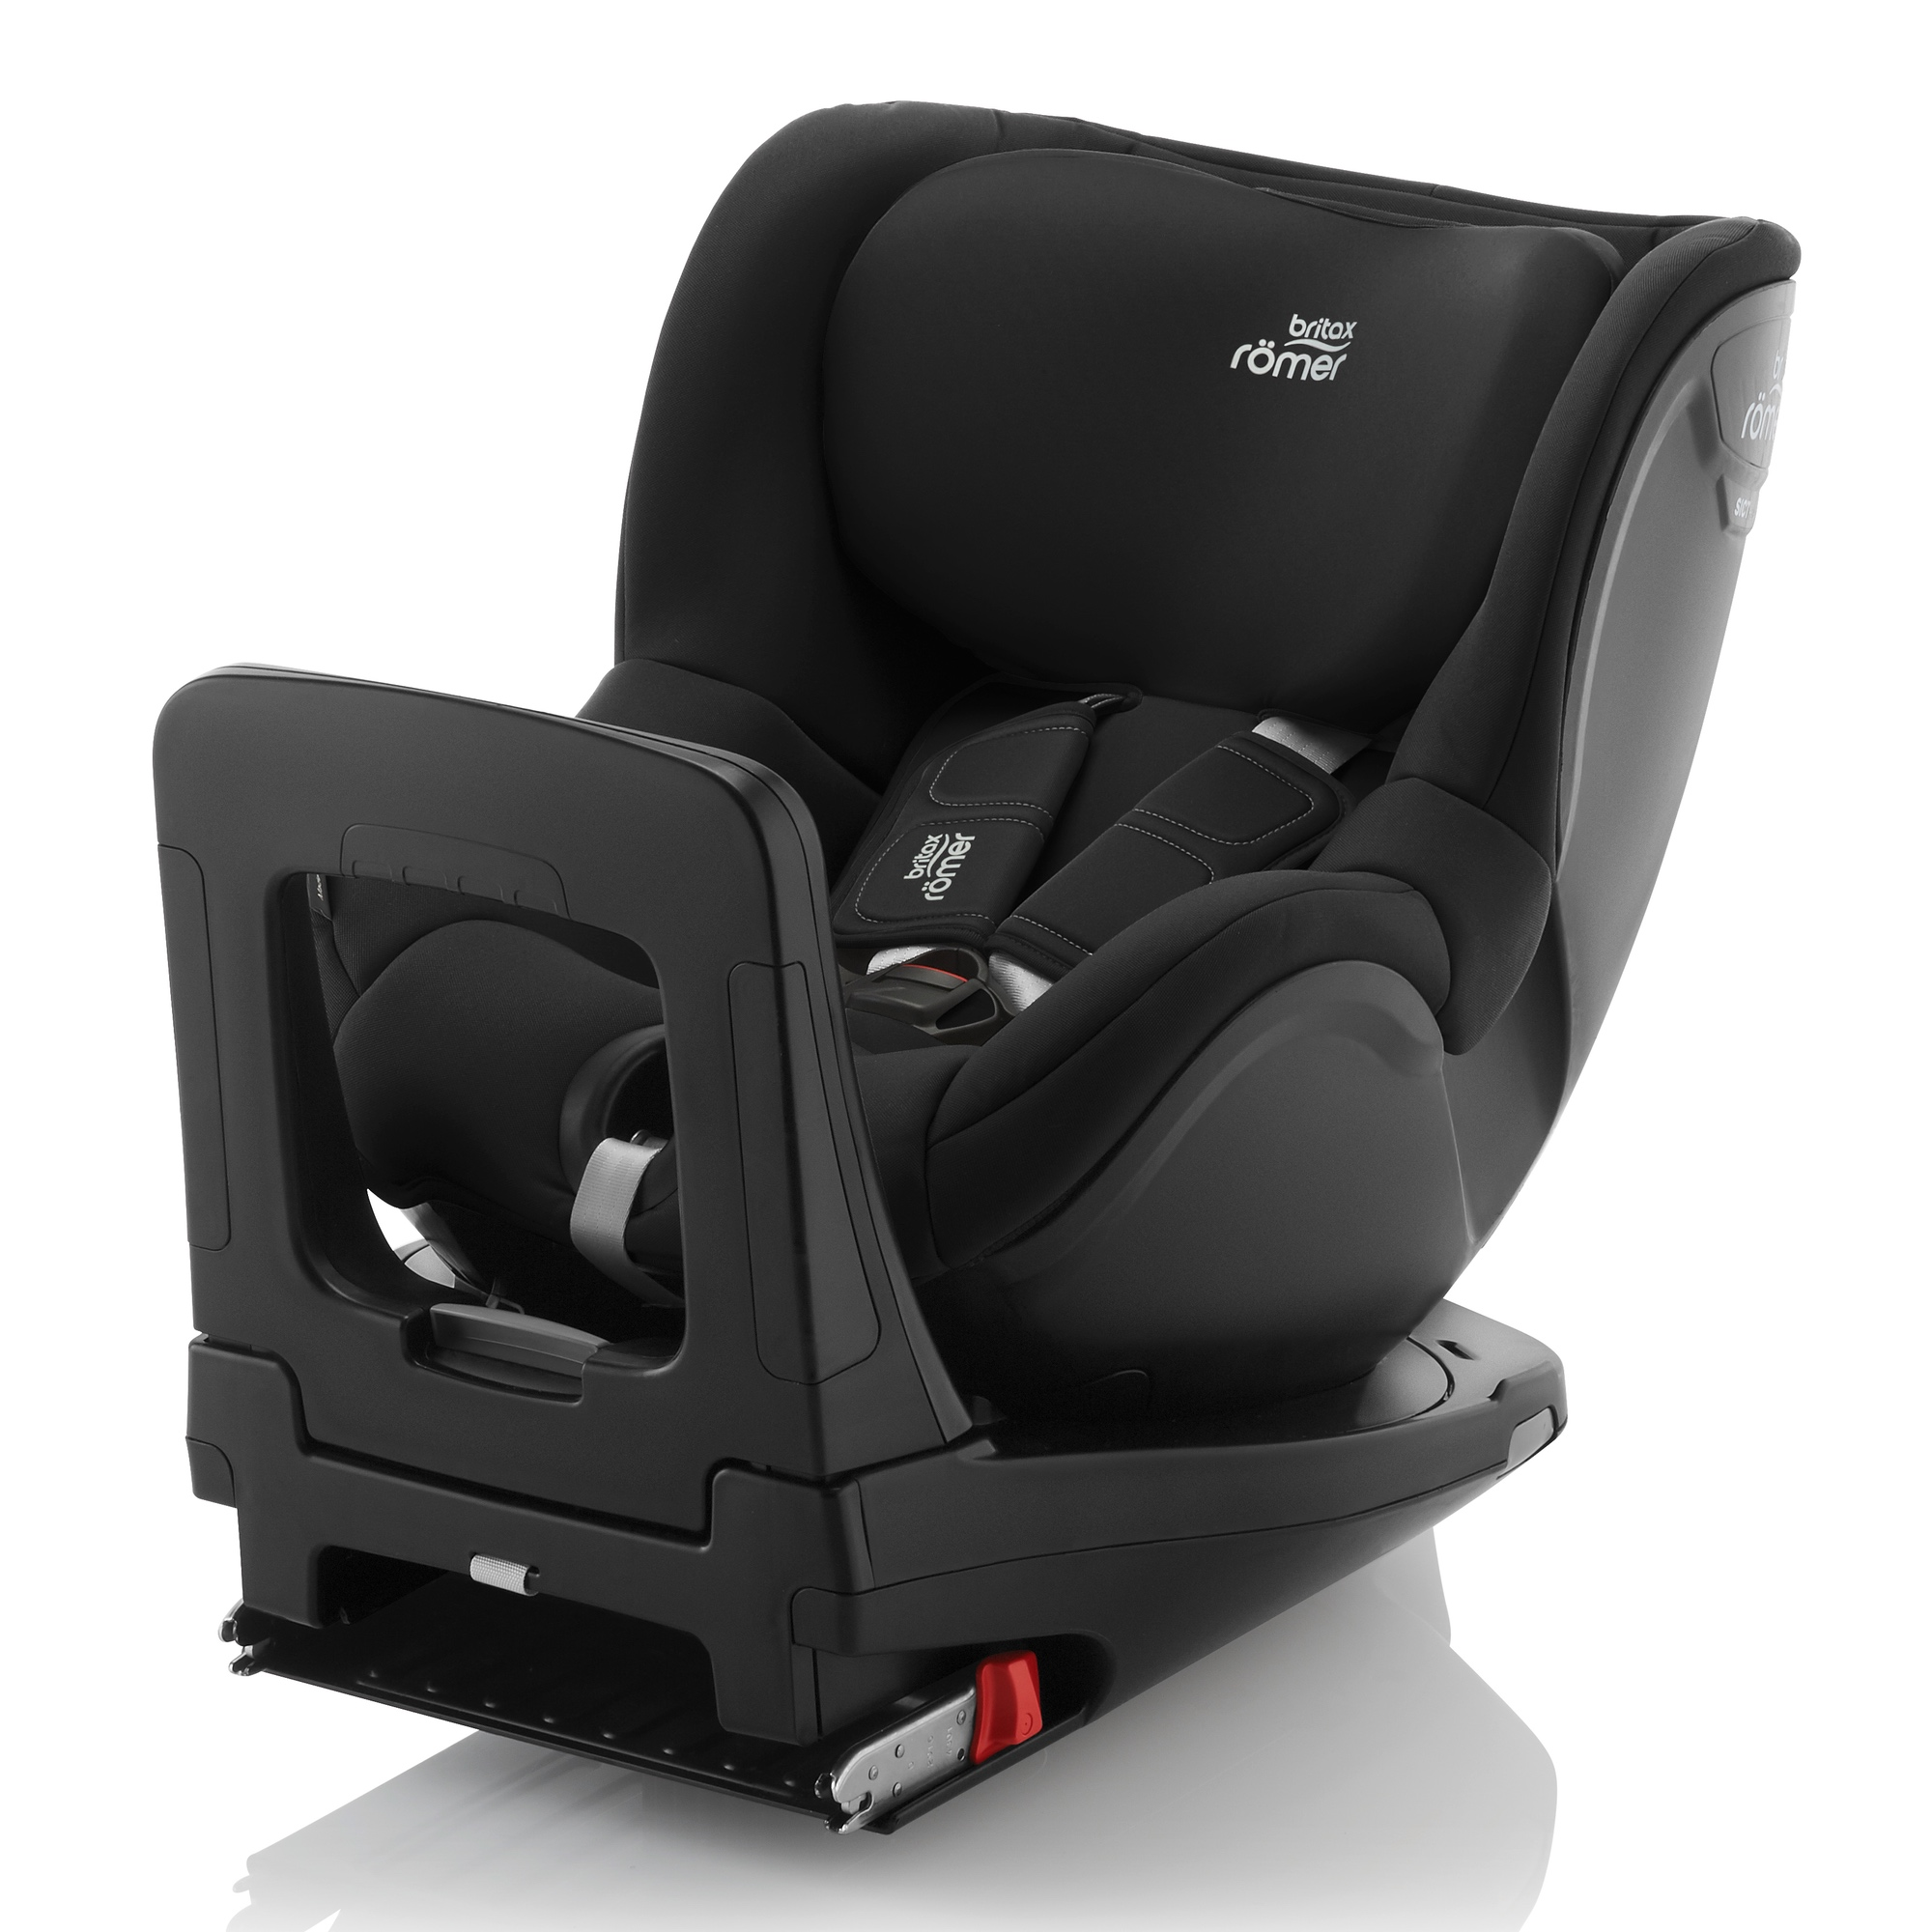 weser kind britax r mer dualfix i size reboarder reboard kindersitz 40 105cm isofix. Black Bedroom Furniture Sets. Home Design Ideas